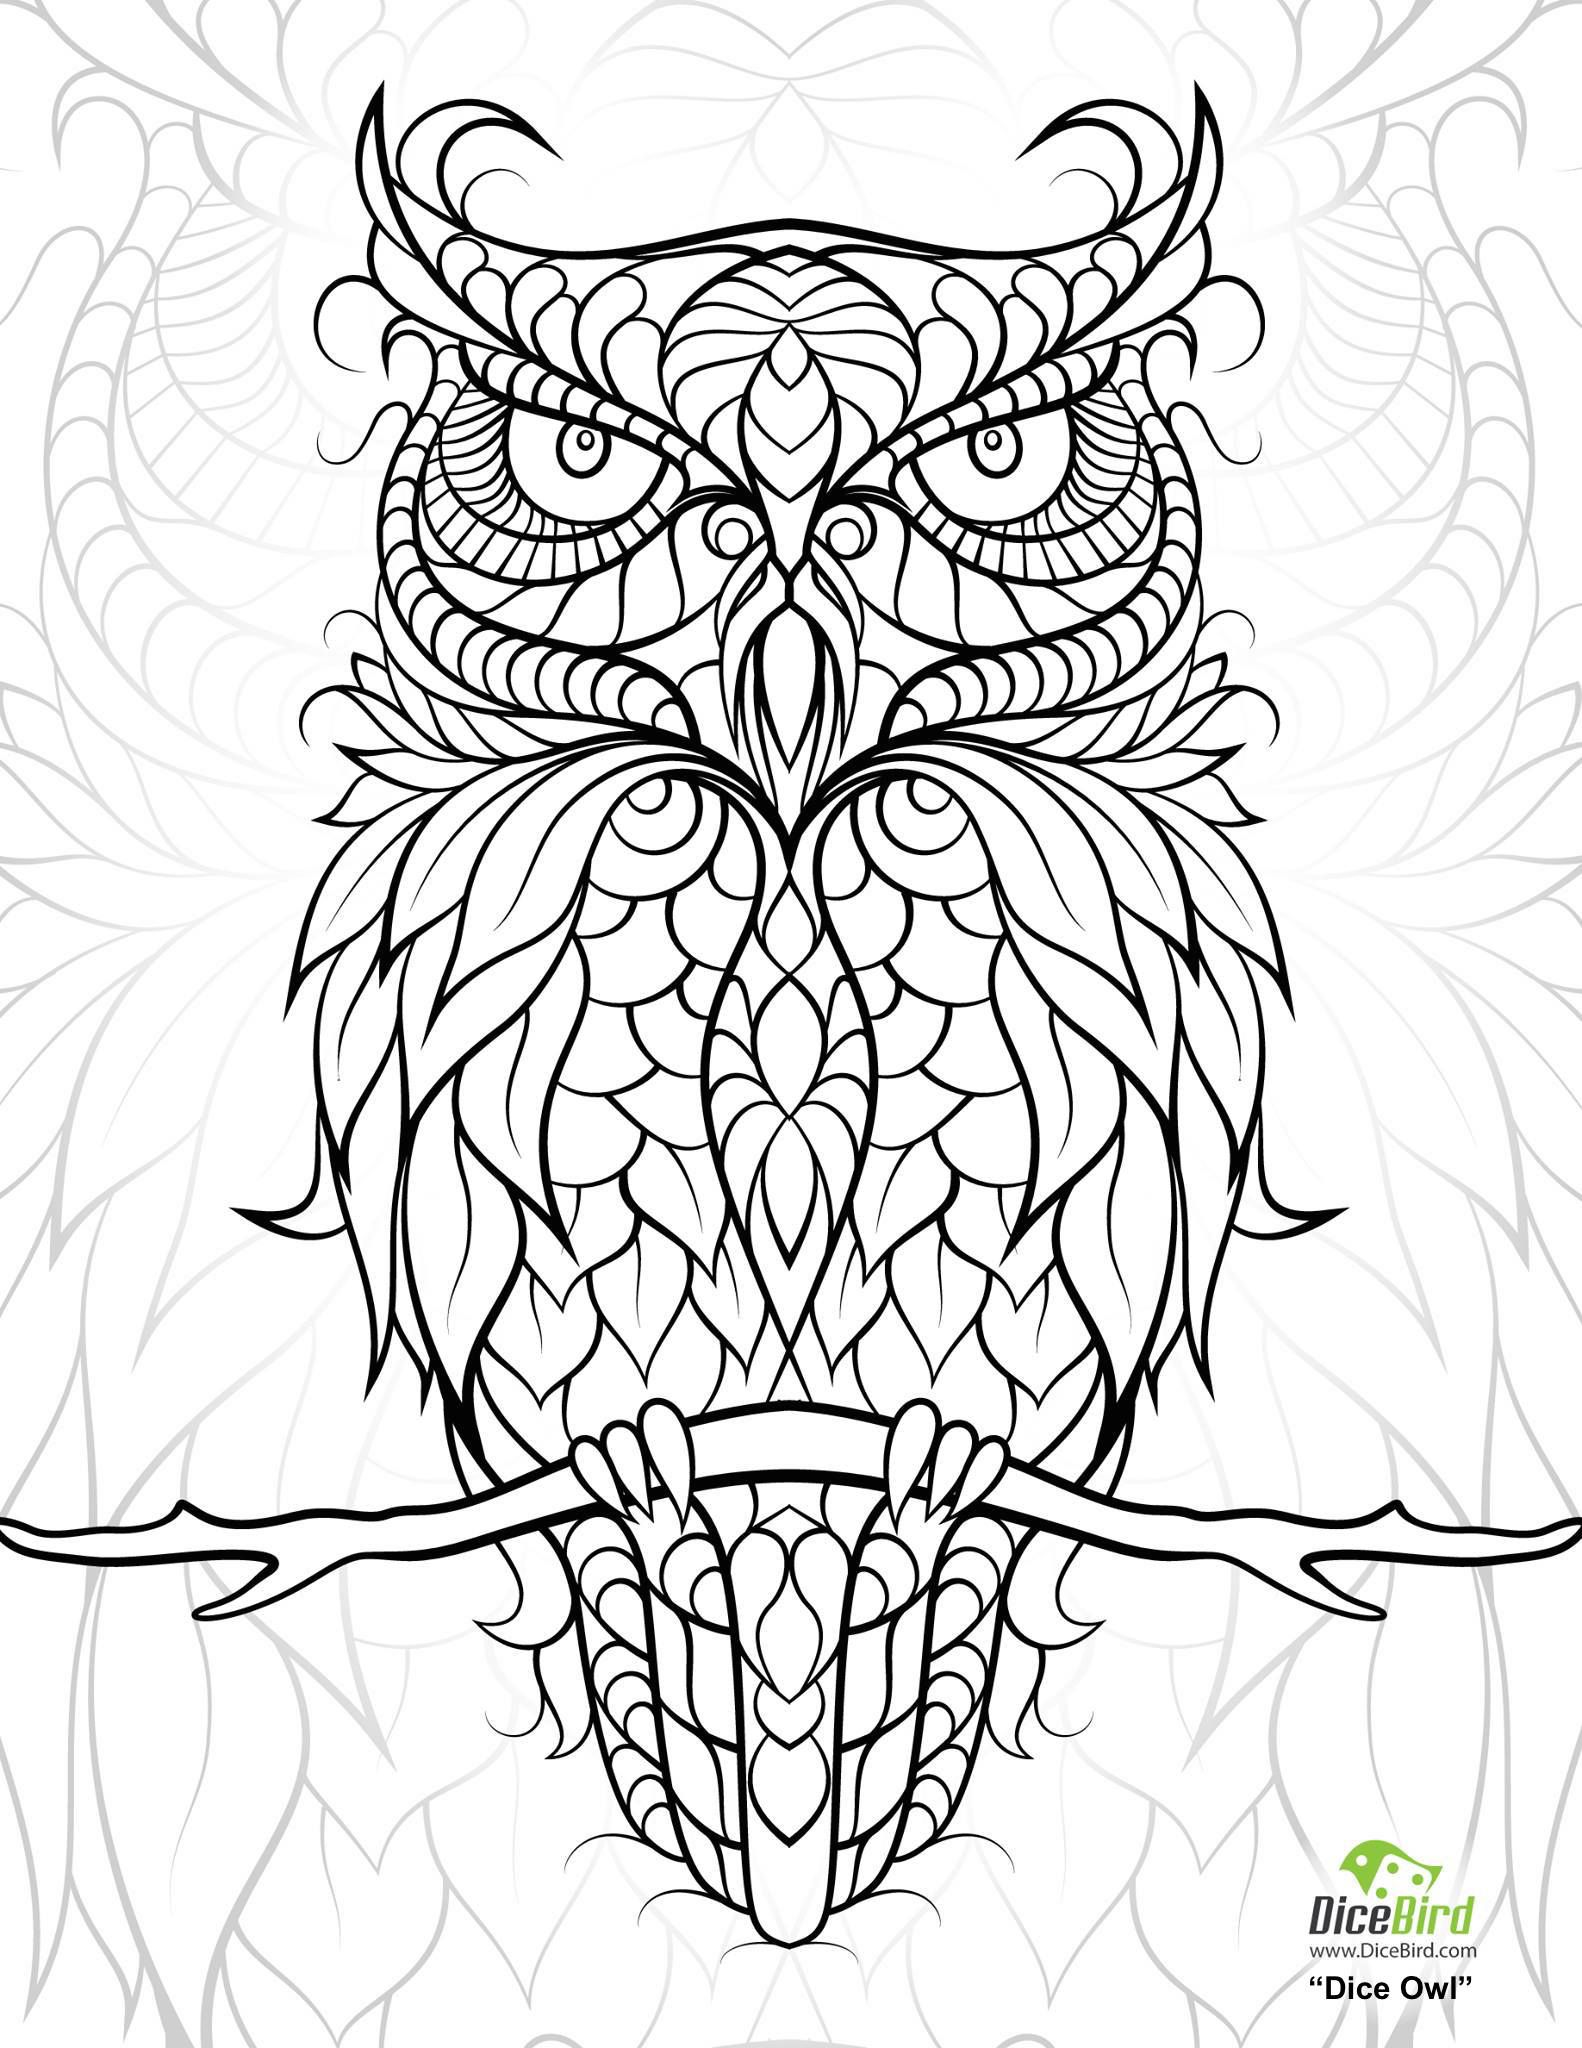 adult coloring pages to print free - diceowl free printable adult coloring pages adult